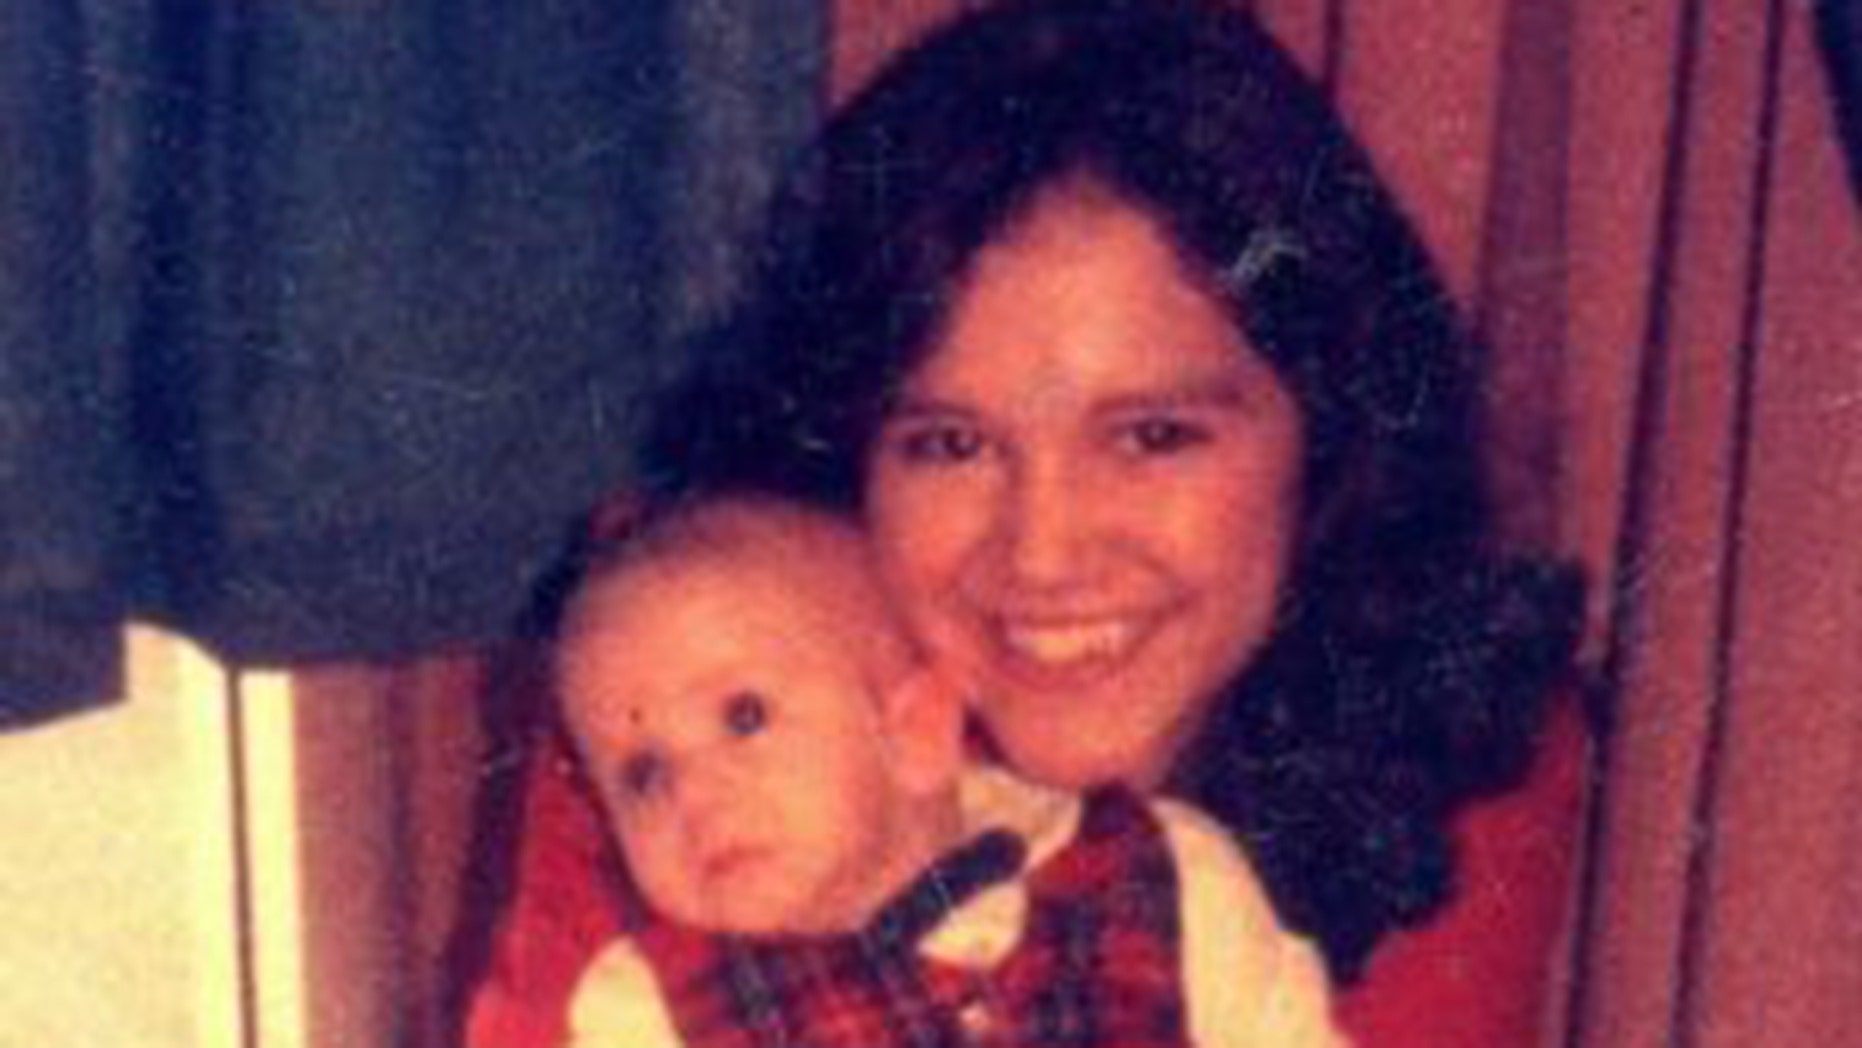 Christopher Abeyta disappeared from his crib on the night of July 15, 1986, when he was 7-months-old.